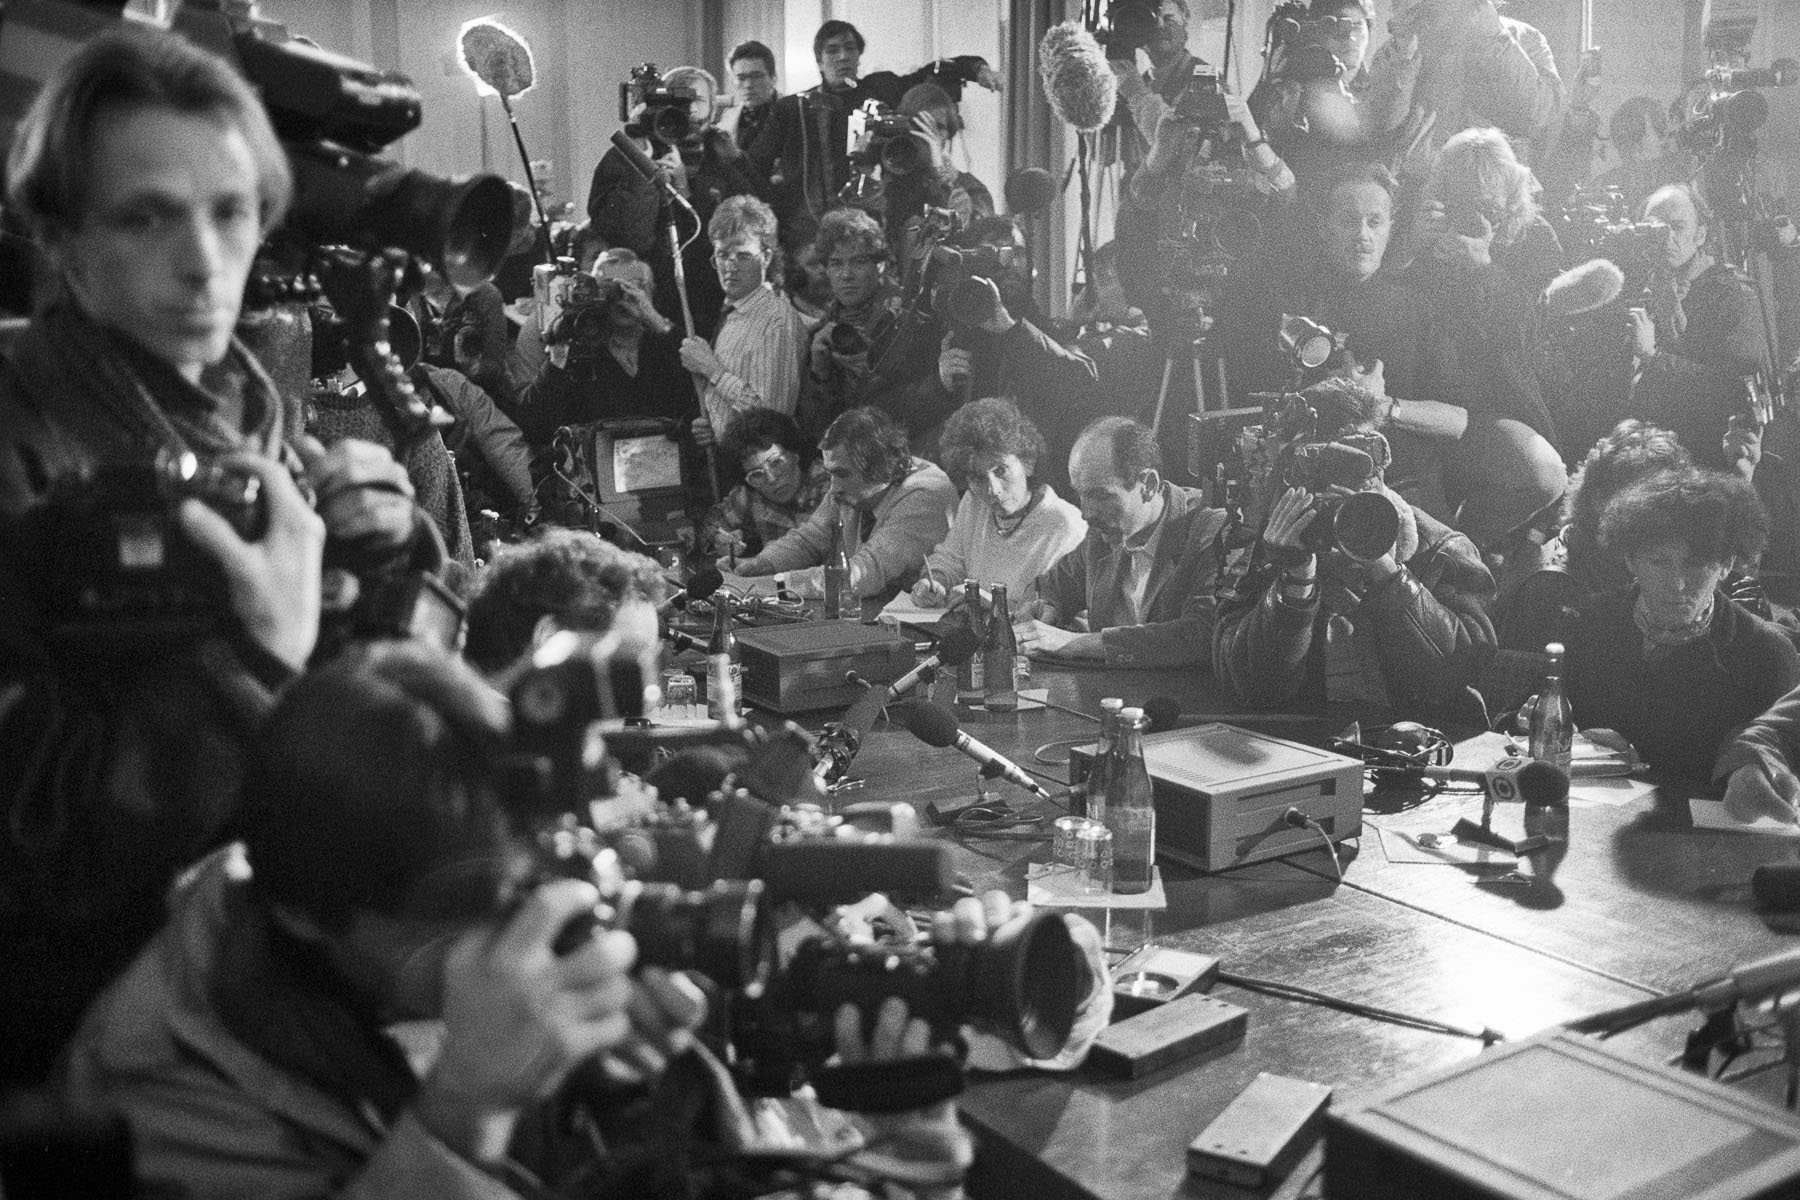 Reporters waiting for Vaclav Havel before a press conference. November 1989